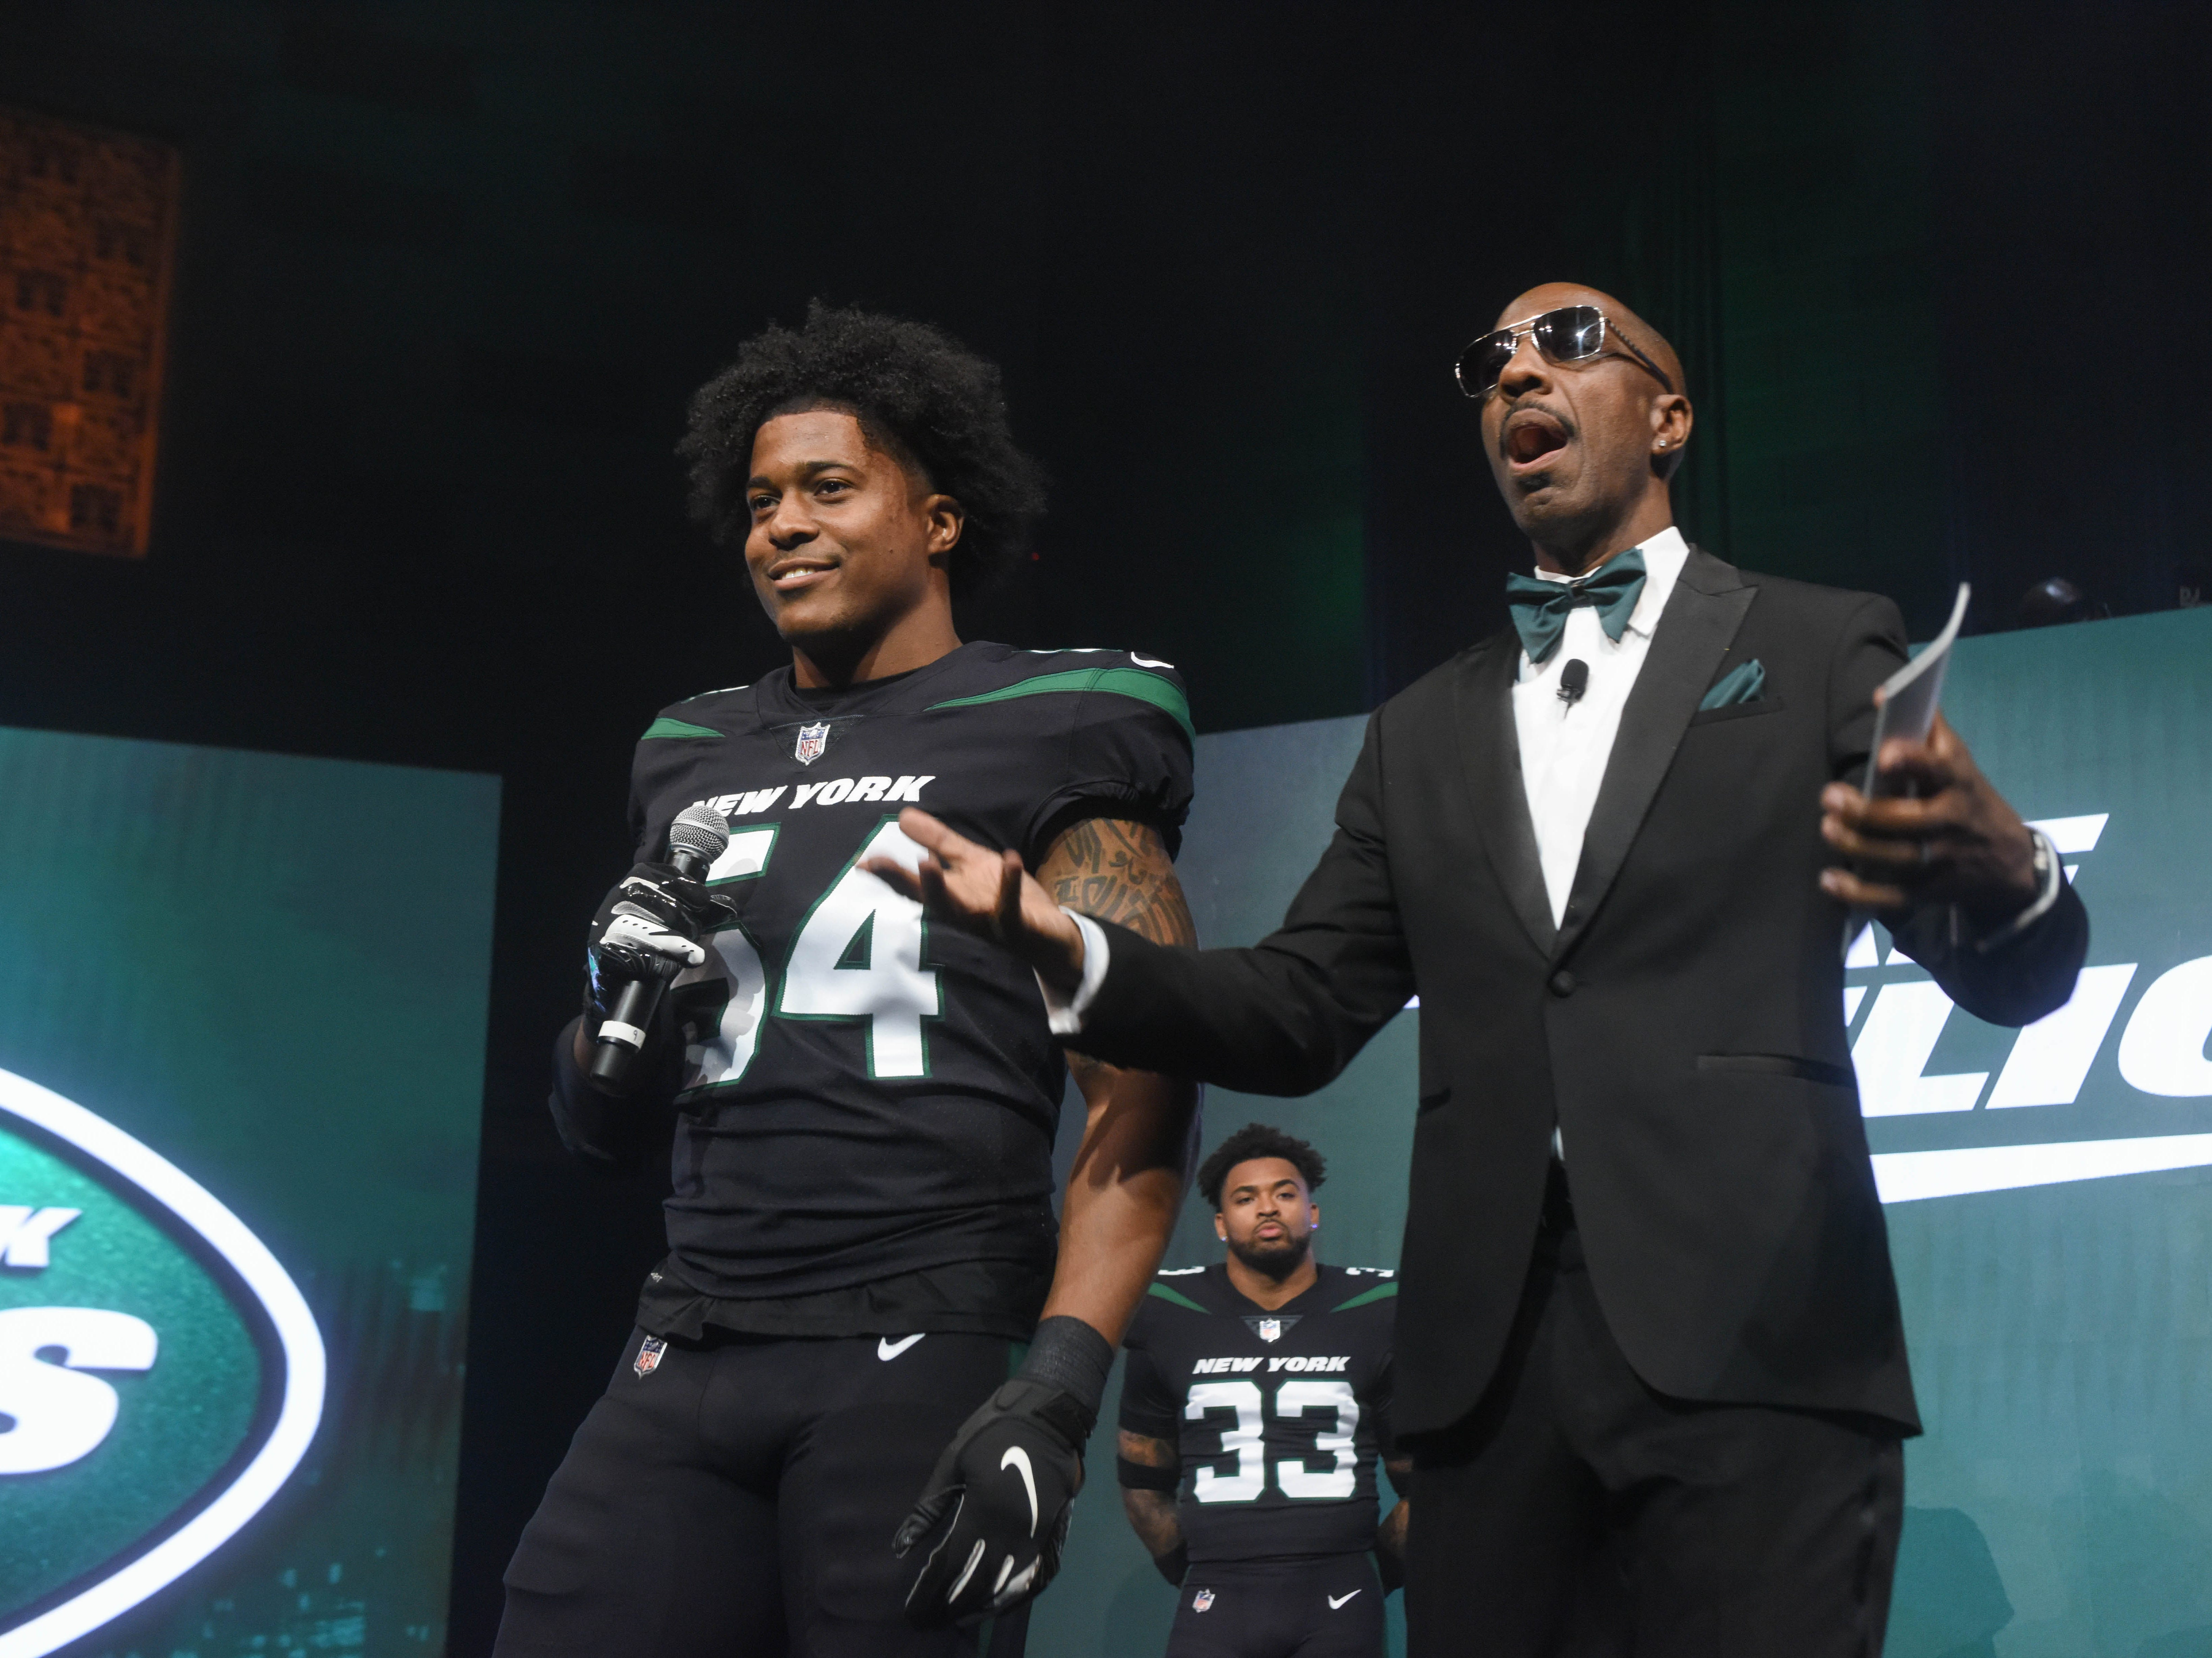 Avery Williamson (NY Jets) and J. B. Smoove (Comedian/Event Host). The NY Jets unveiled their new football uniforms with an event hosted by JB Smoove at Gotham Hall in New York. 04/05/2019